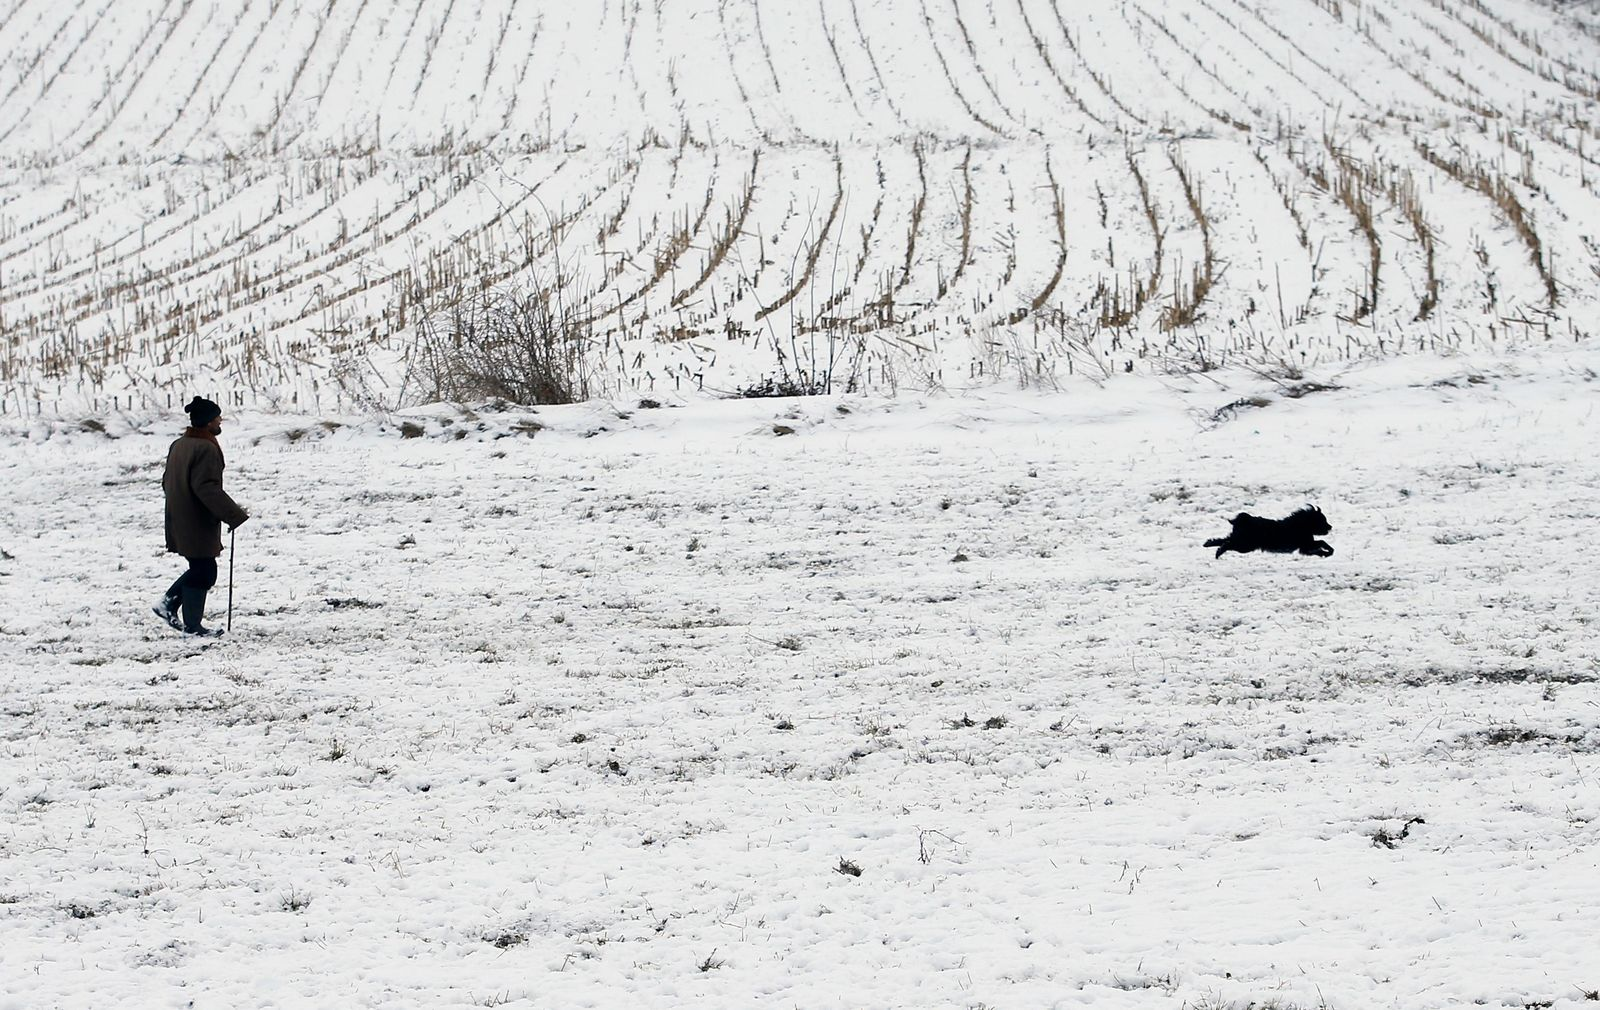 A shepherd dog runs in front of a shepherd leading a herd of sheep over snow-covered meadows near the village Beska, 30 kilometres north of Belgrade, Serbia, Friday, Jan. 11, 2019. Heavy snowfall in the Balkans has closed down schools, left some remote villages cut off and disrupted traffic and power supplies in many areas in the region. (AP Photo/Darko Vojinovic)